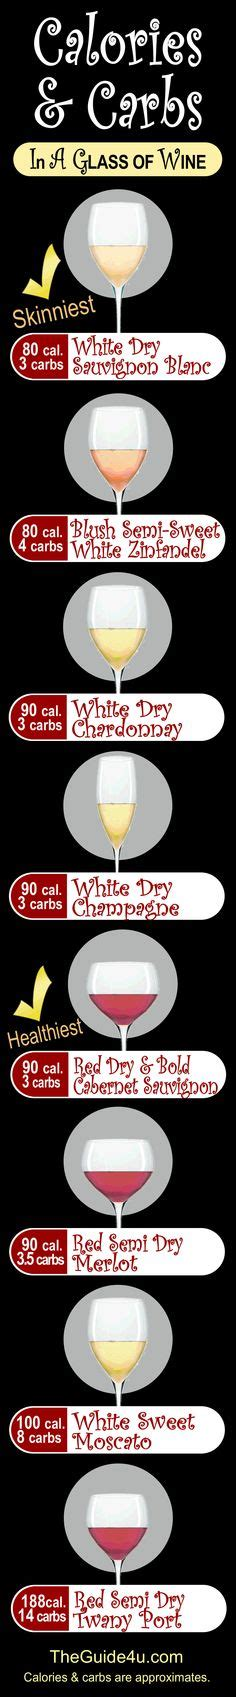 carbohydrates wine 1000 images about carbohydrate balance on